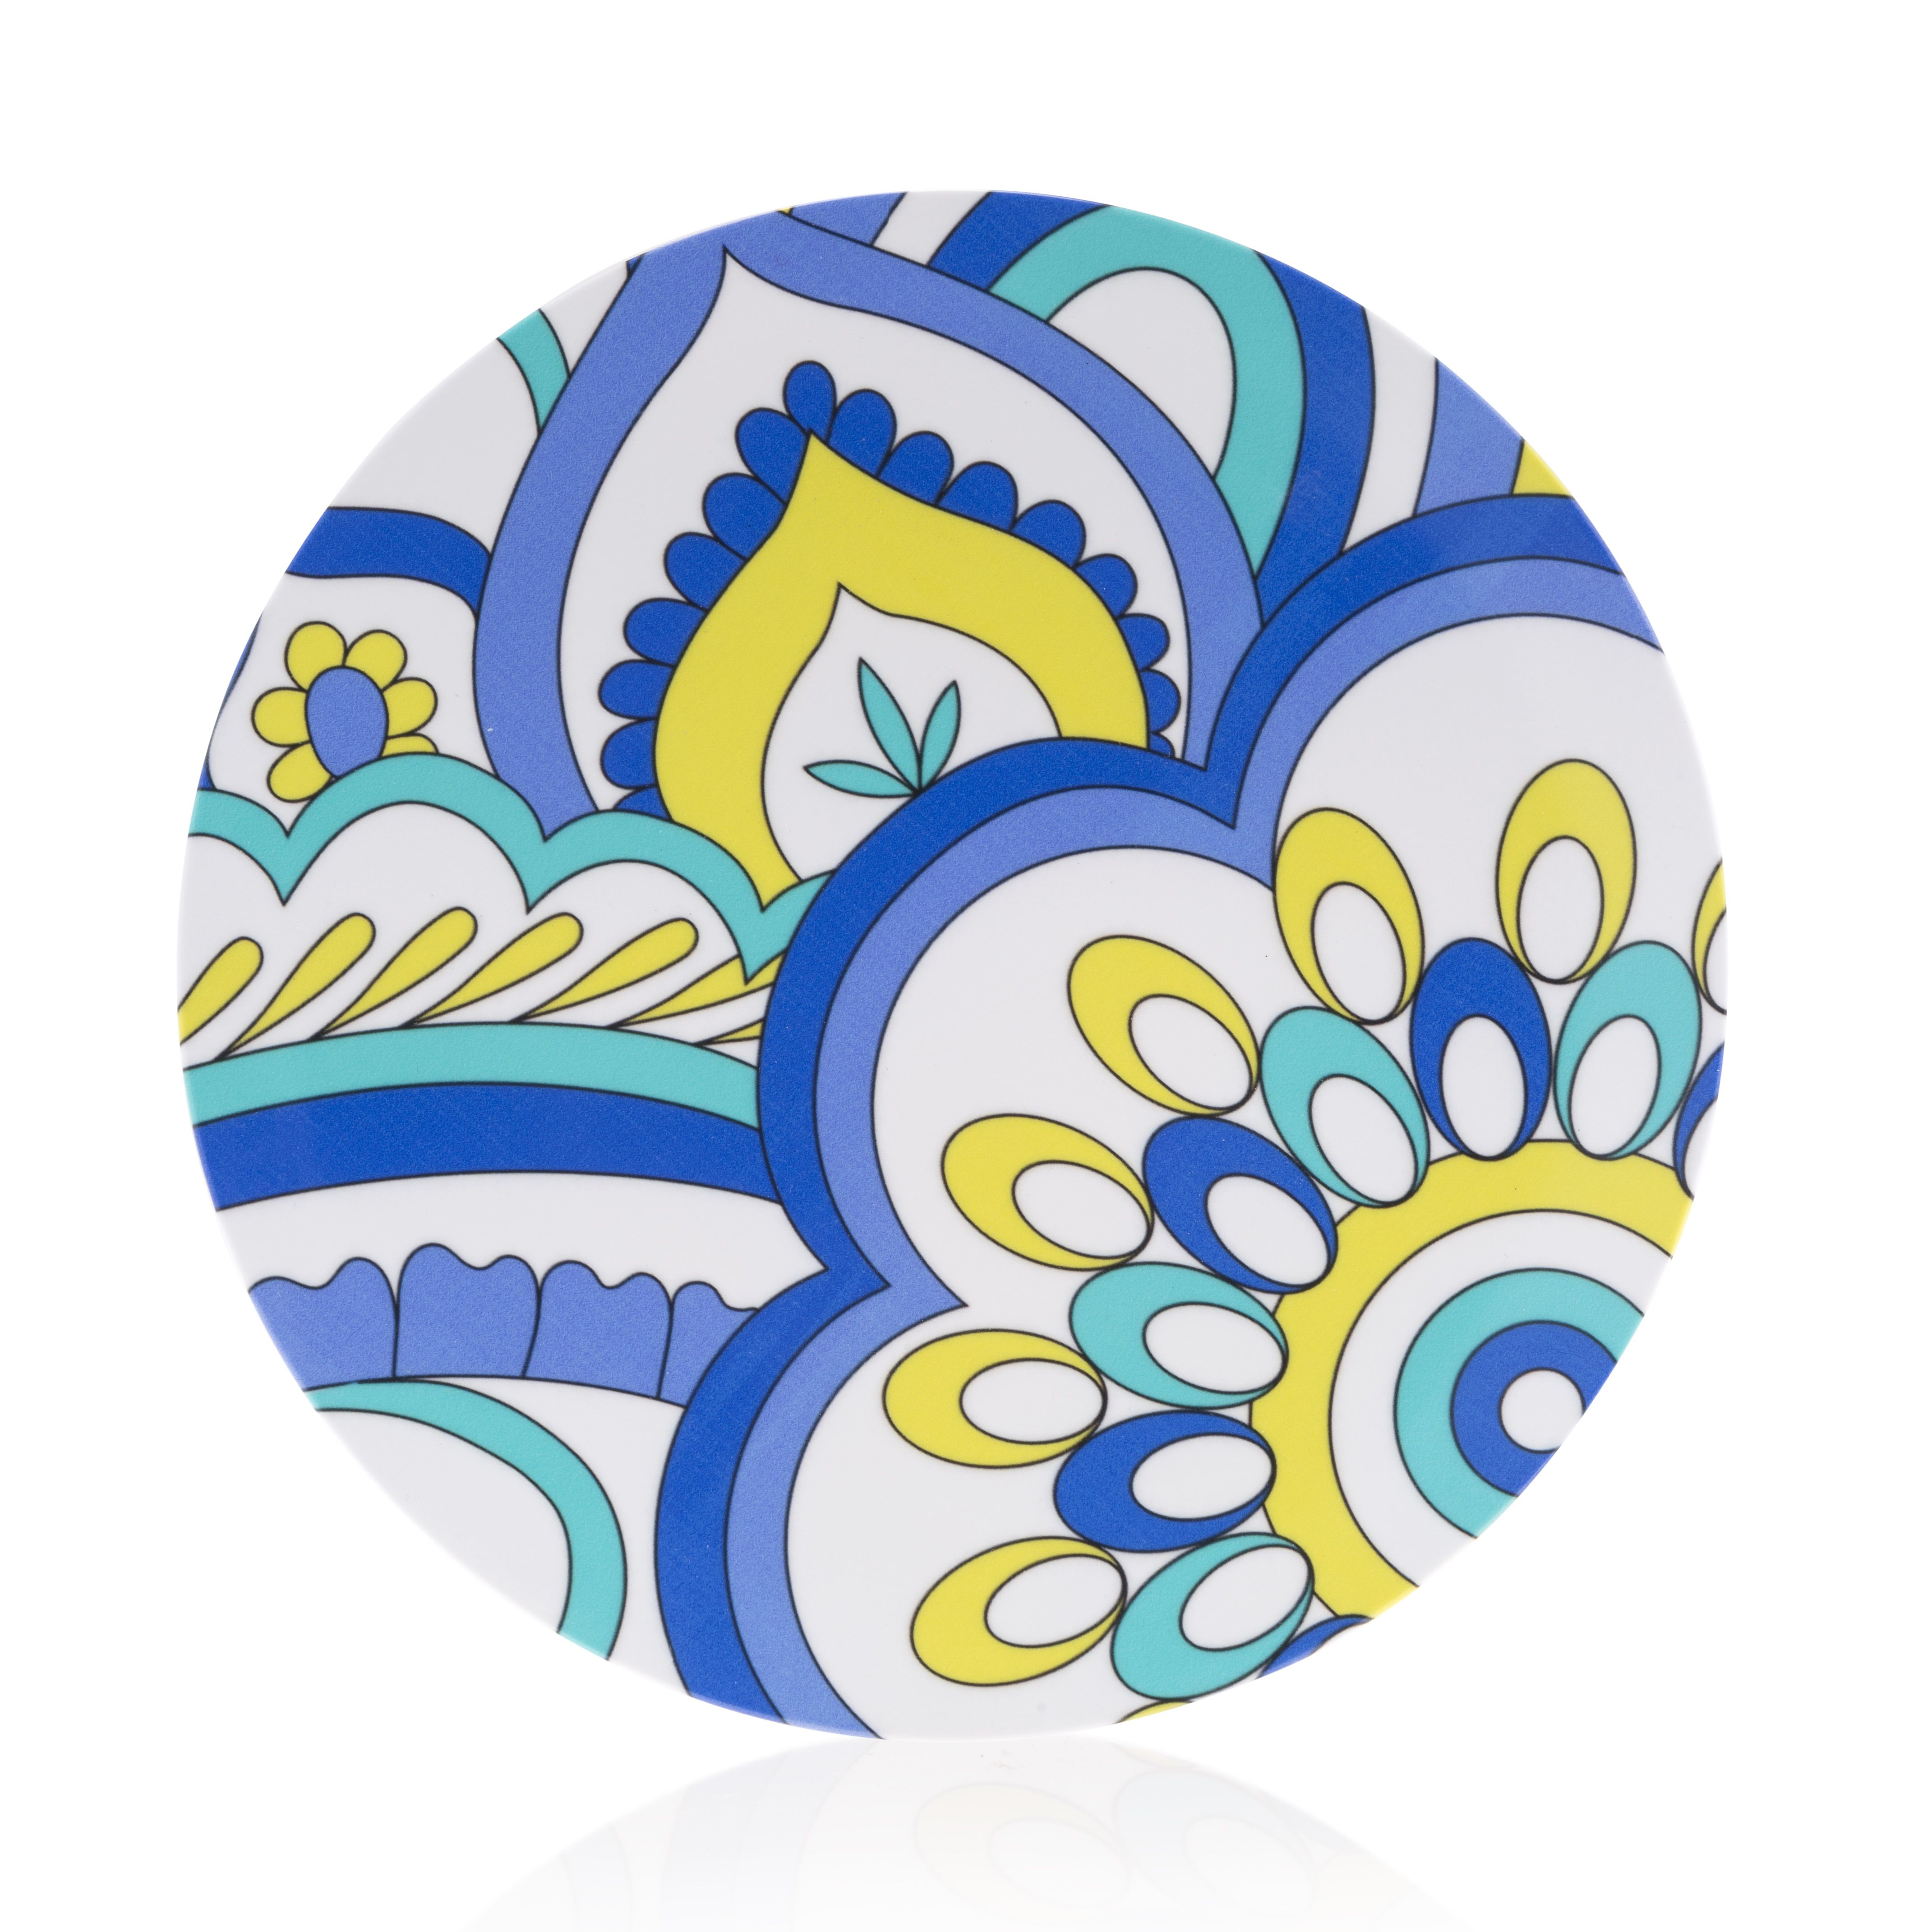 Enjoy your favorite dessert on this colorful Melamine Plate. Dishwasher safe. plateshoppe.com  sc 1 st  Pinterest & Enjoy your favorite dessert on this colorful Melamine Plate ...